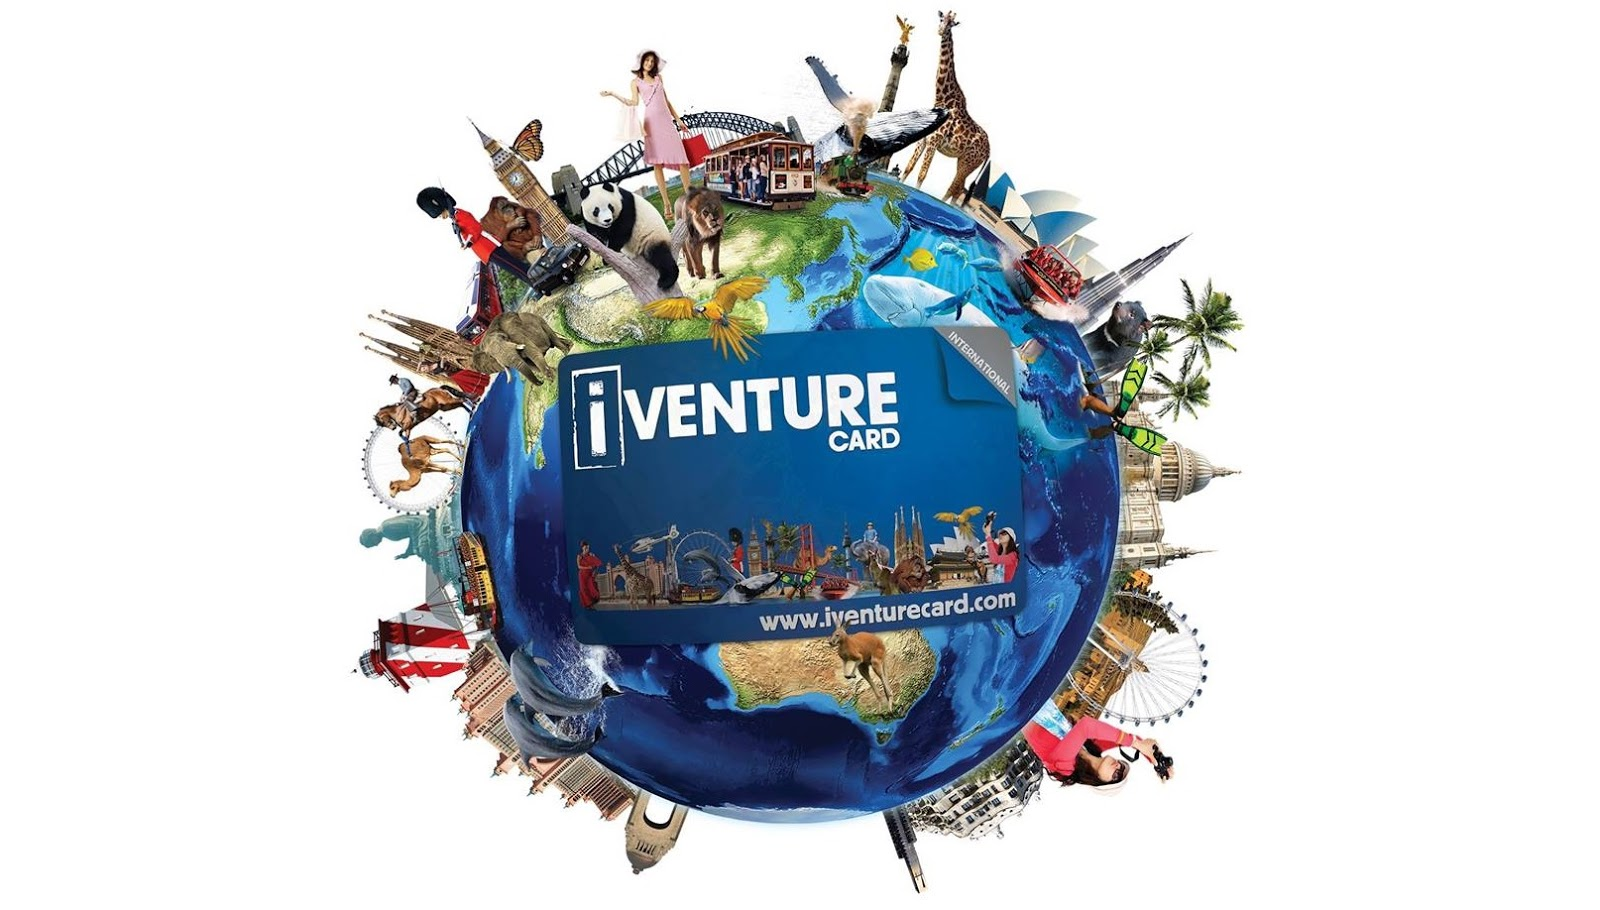 Melbourne-iVenture-Card-Attractions-Pass-Discount-Offers-Cheap-Saving-Guidelines-Independent Travel